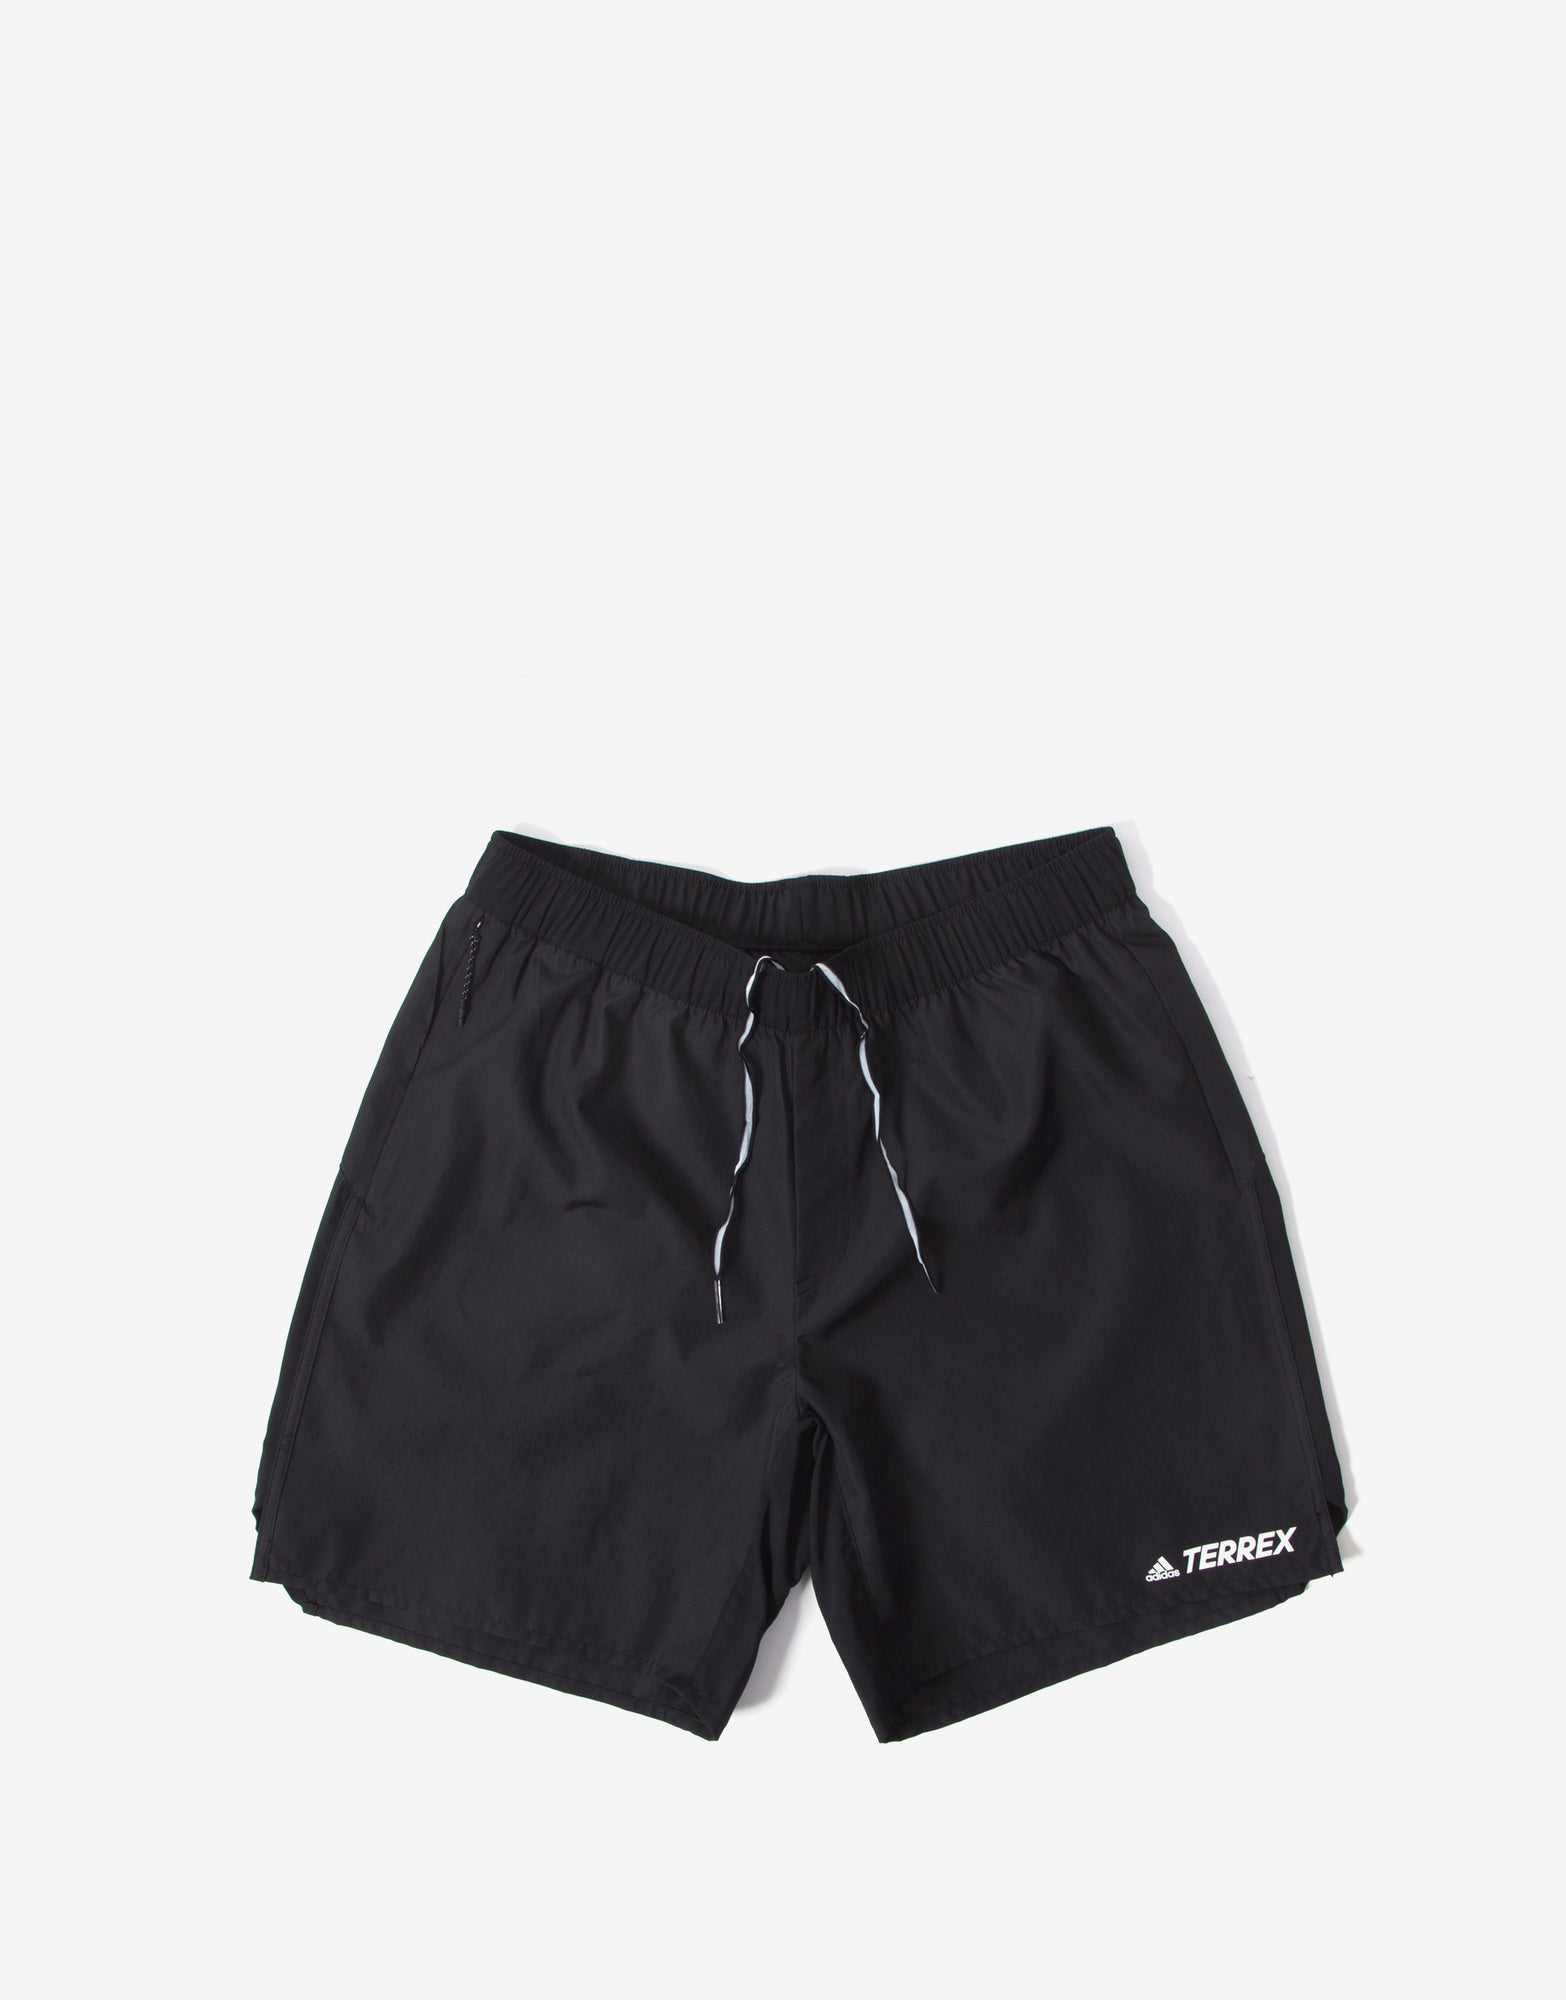 adidas TERREX Primeblue Trail Running Shorts - Black